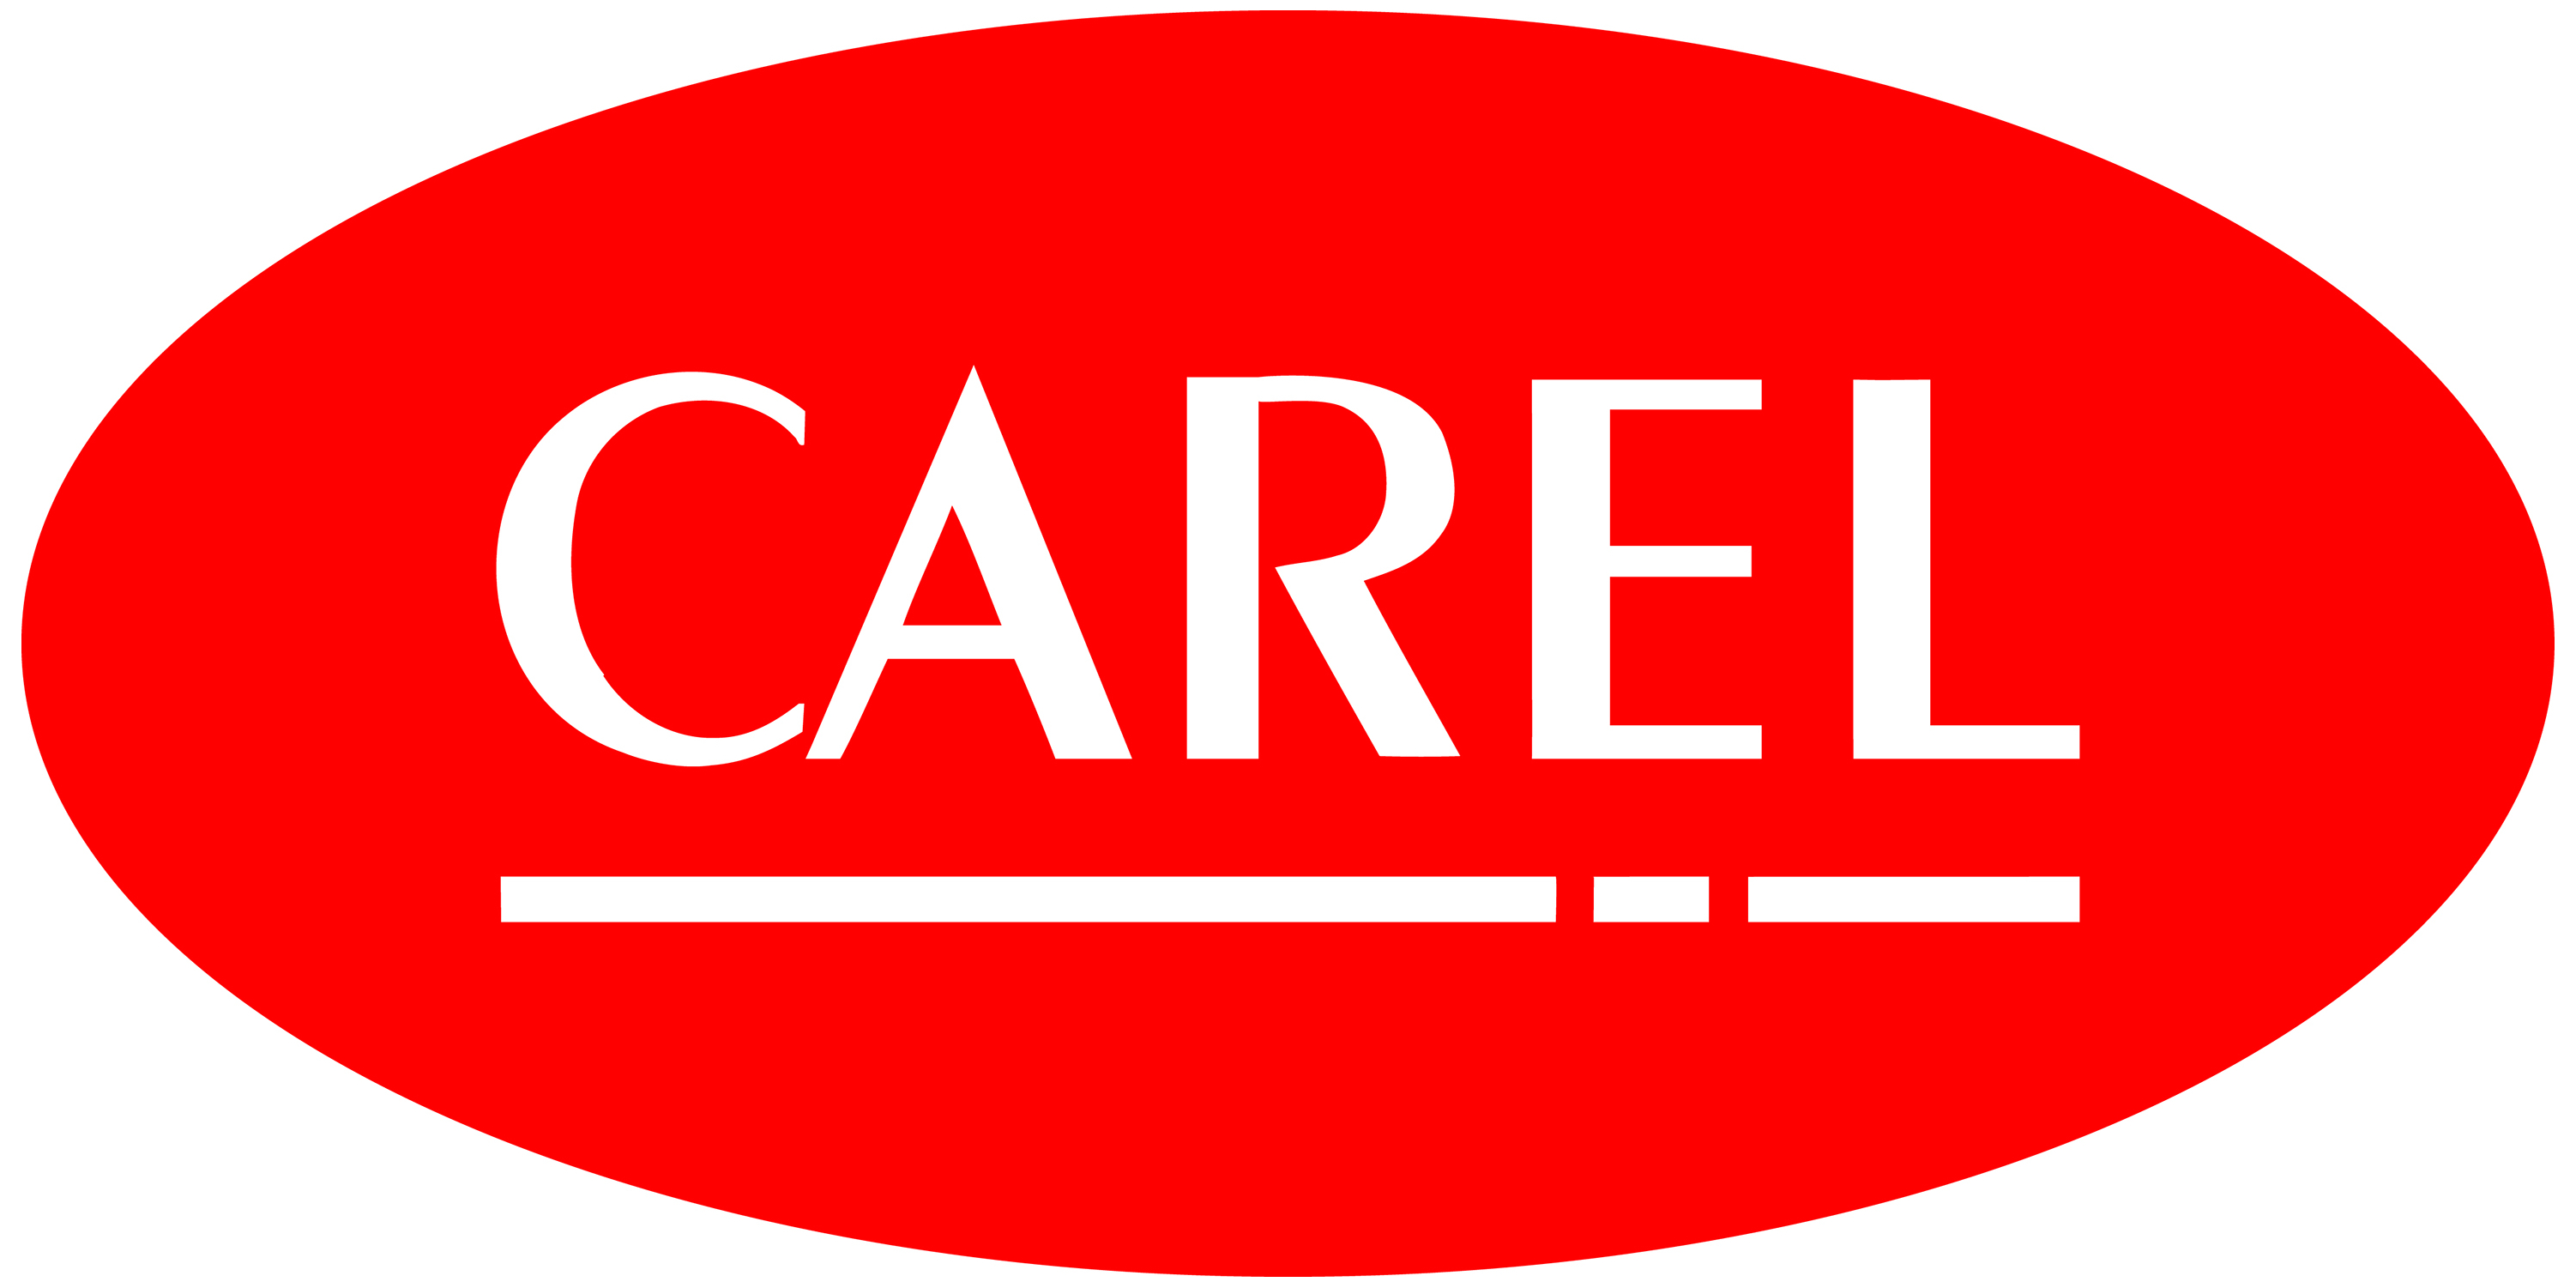 CAREL - Contact us